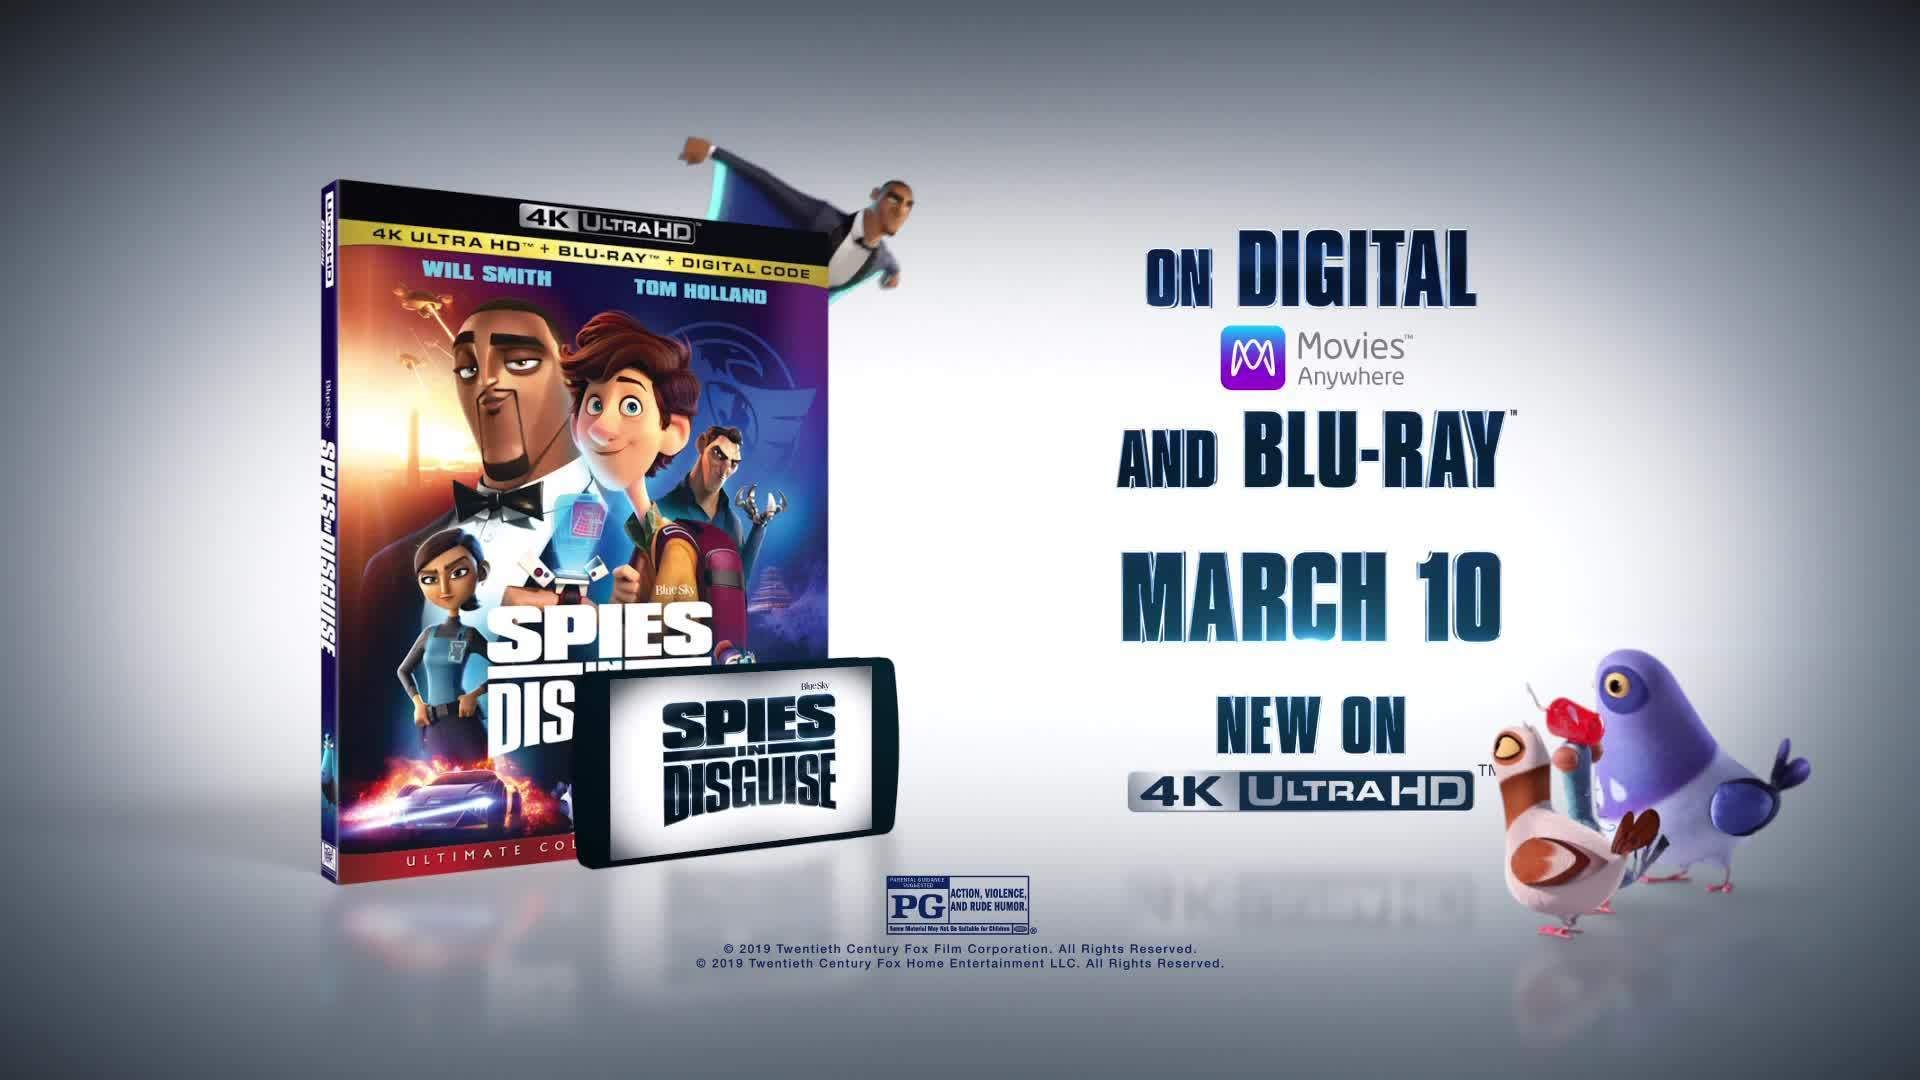 On Digital & Blu-ray